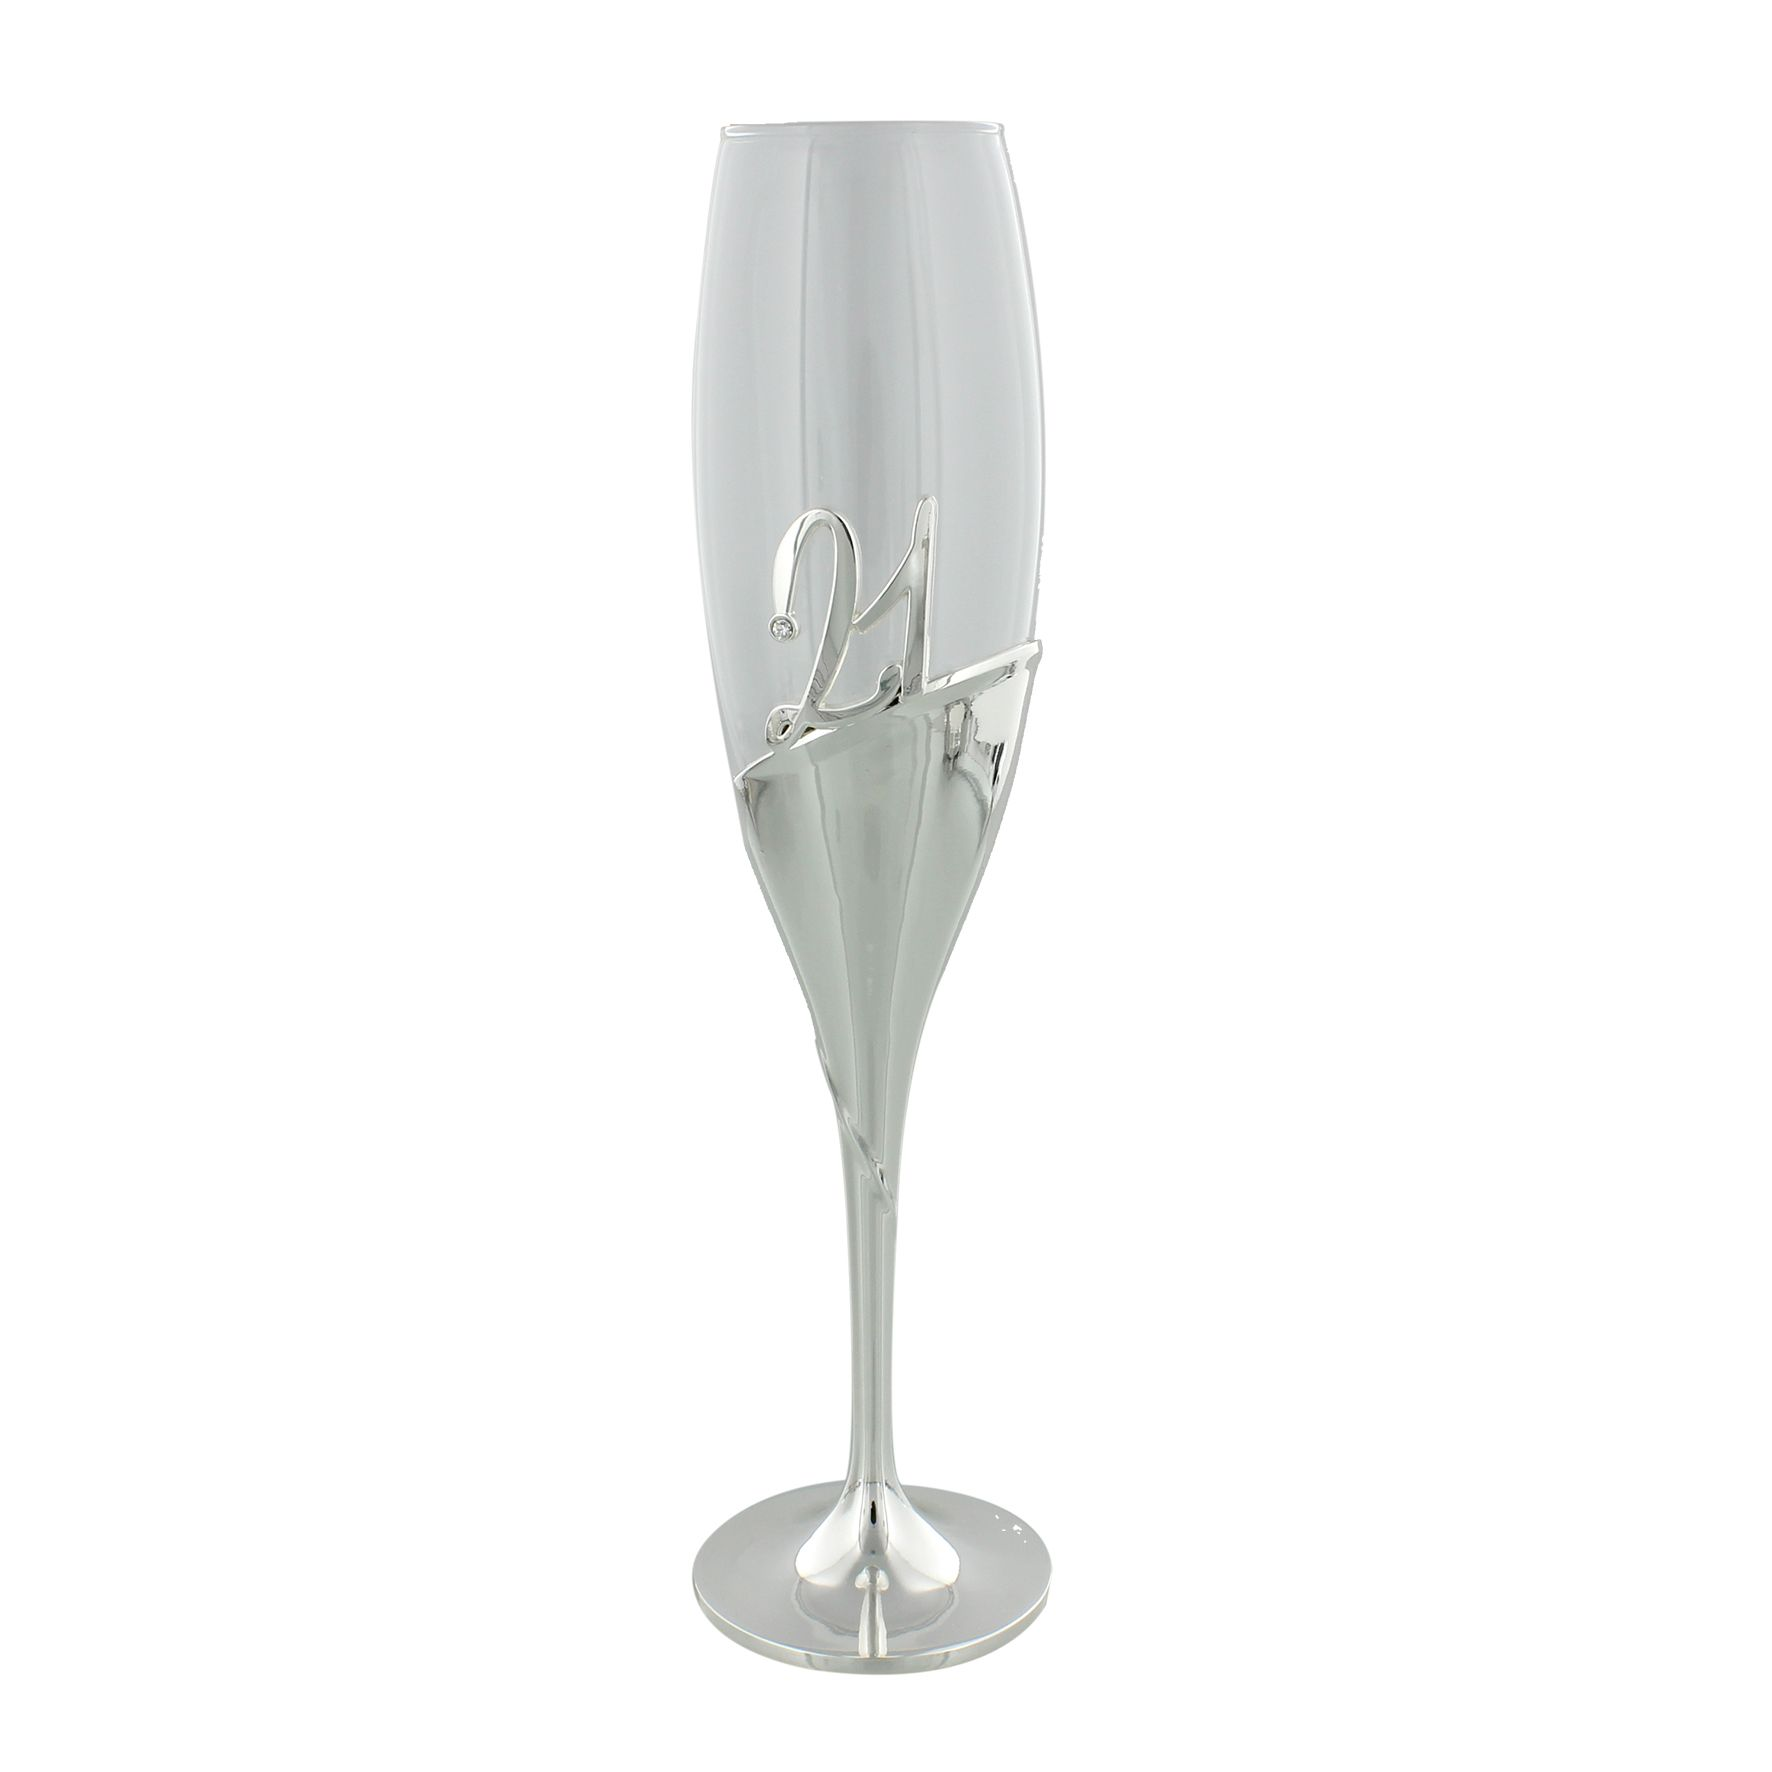 Luxury 21st Birthday Champagne Flute Keepsake Glass Silver Plated In Presentation Box For 2808 P